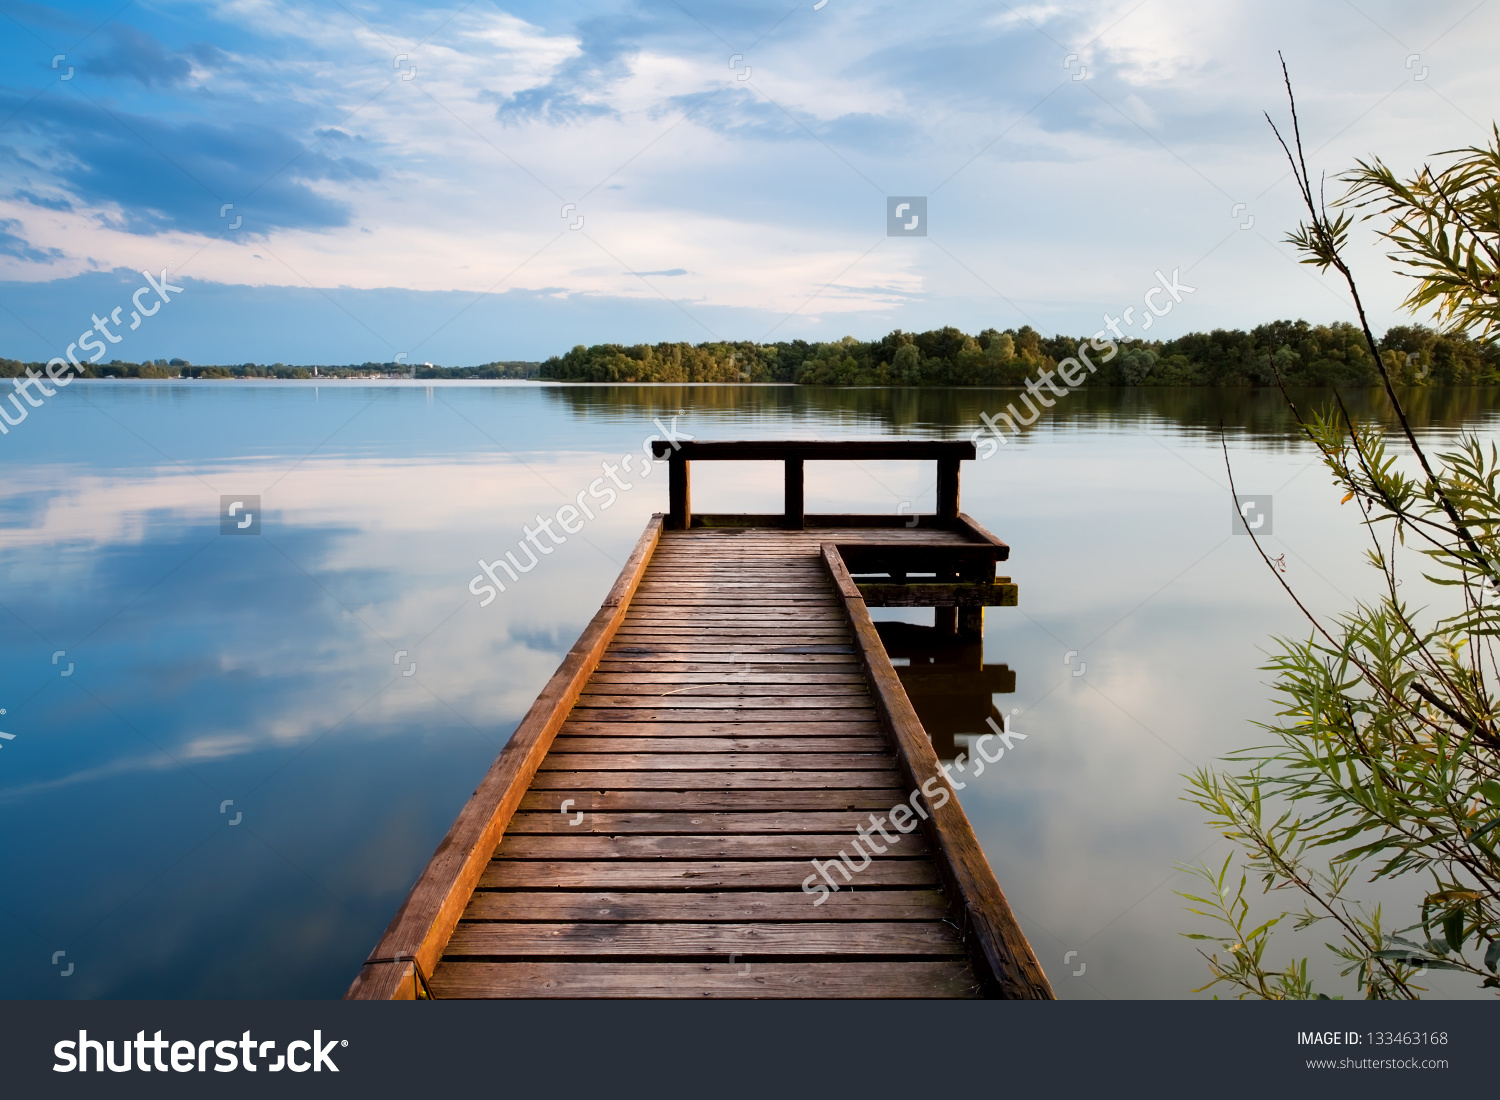 Wooden Pier On Big Lake Groningen Stock Photo 133463168.